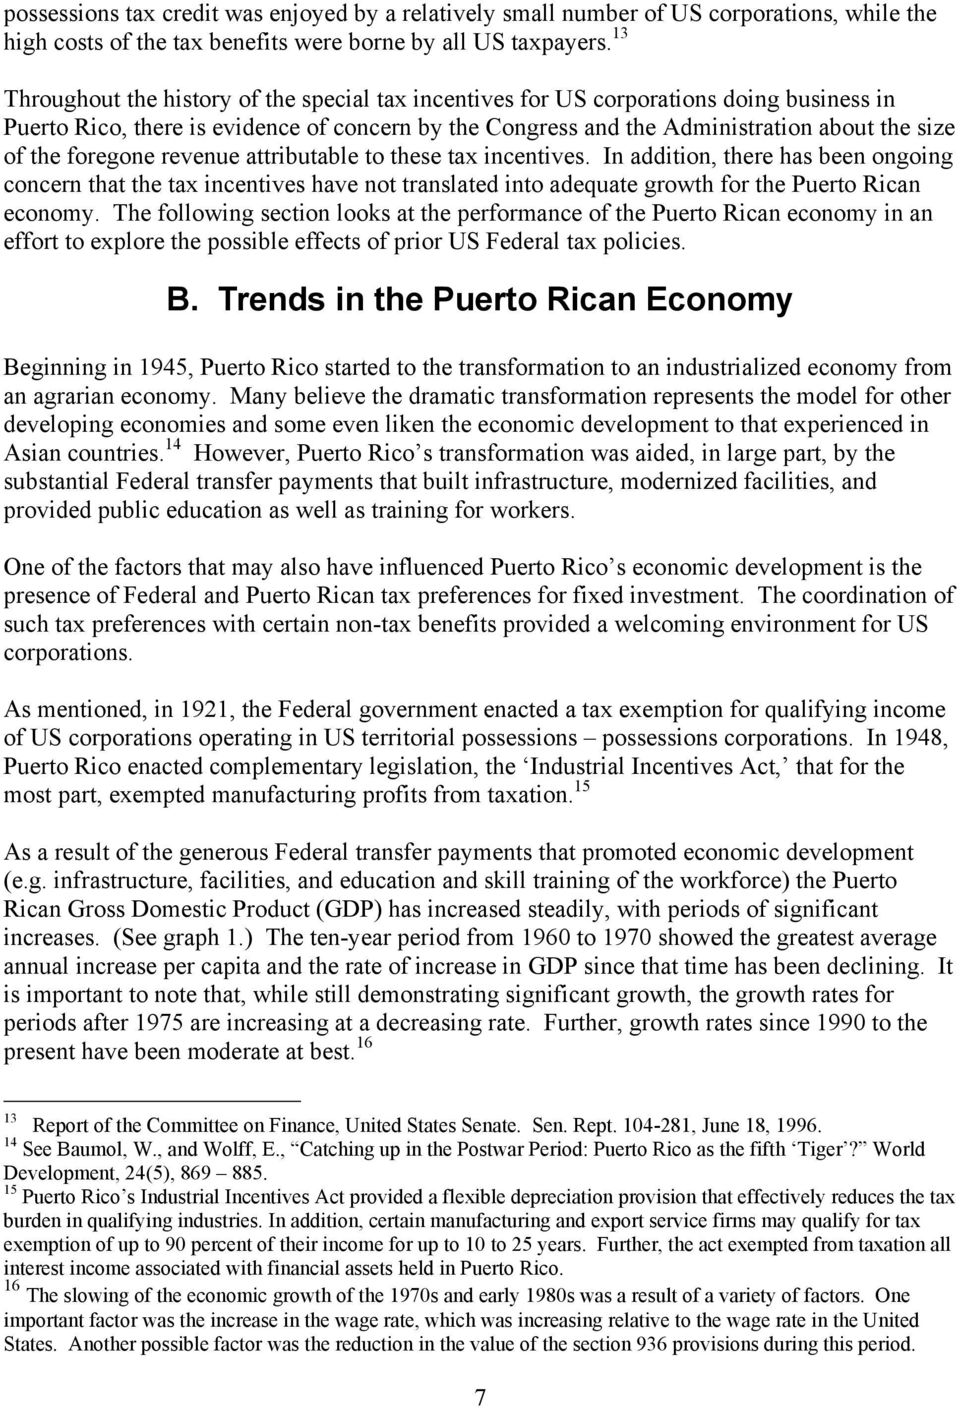 foregone revenue attributable to these tax incentives. In addition, there has been ongoing concern that the tax incentives have not translated into adequate growth for the Puerto Rican economy.